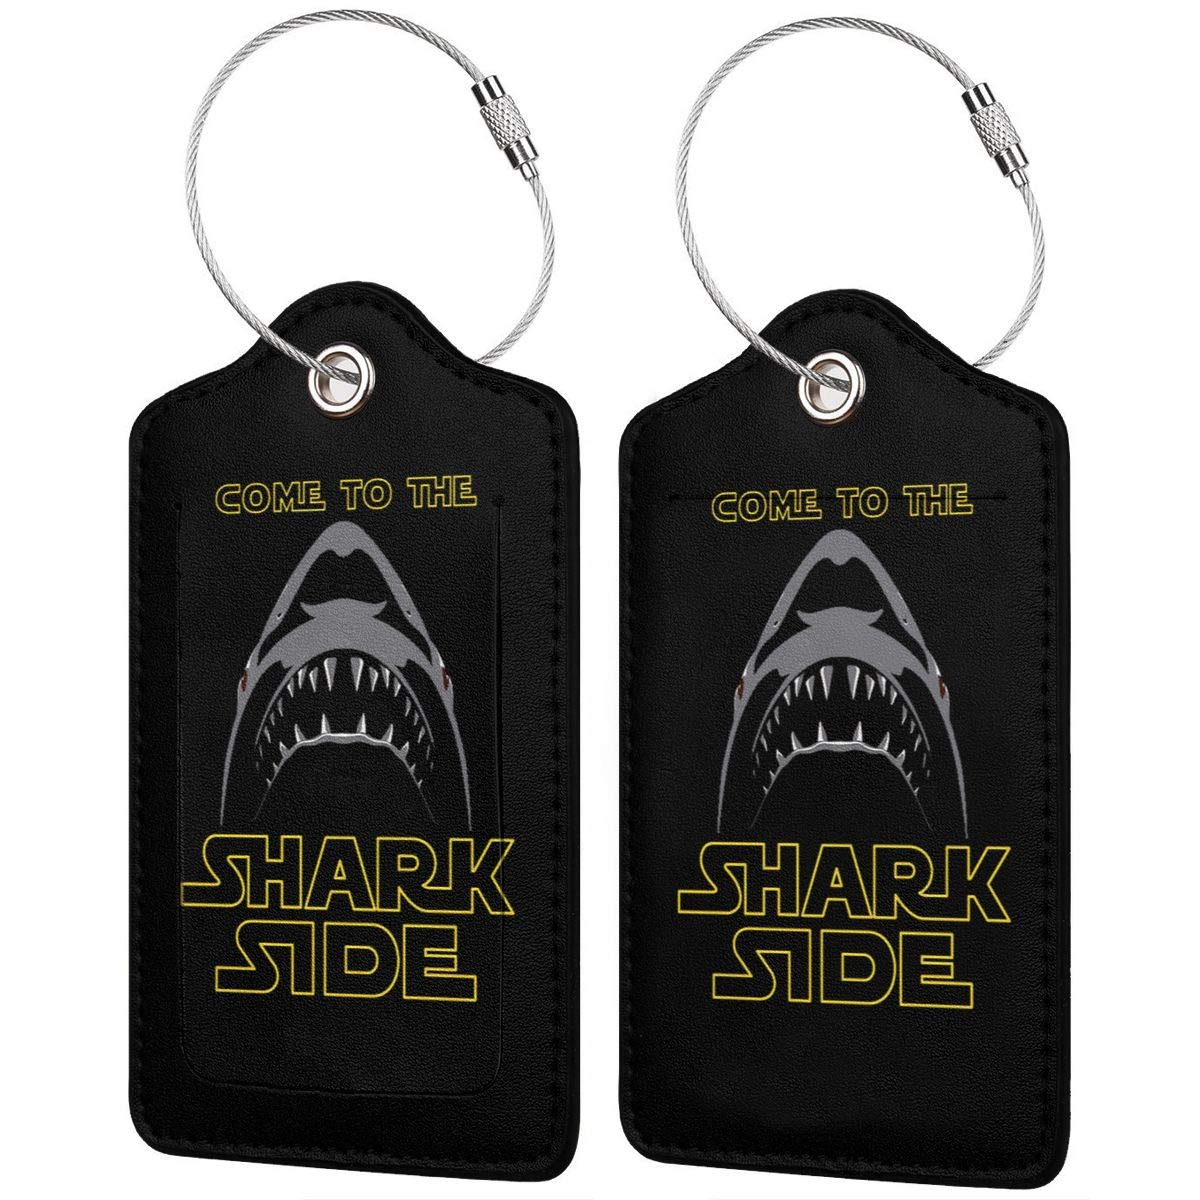 Come To The Shark Side Leather Luggage Tag Travel ID Label For Baggage Suitcase